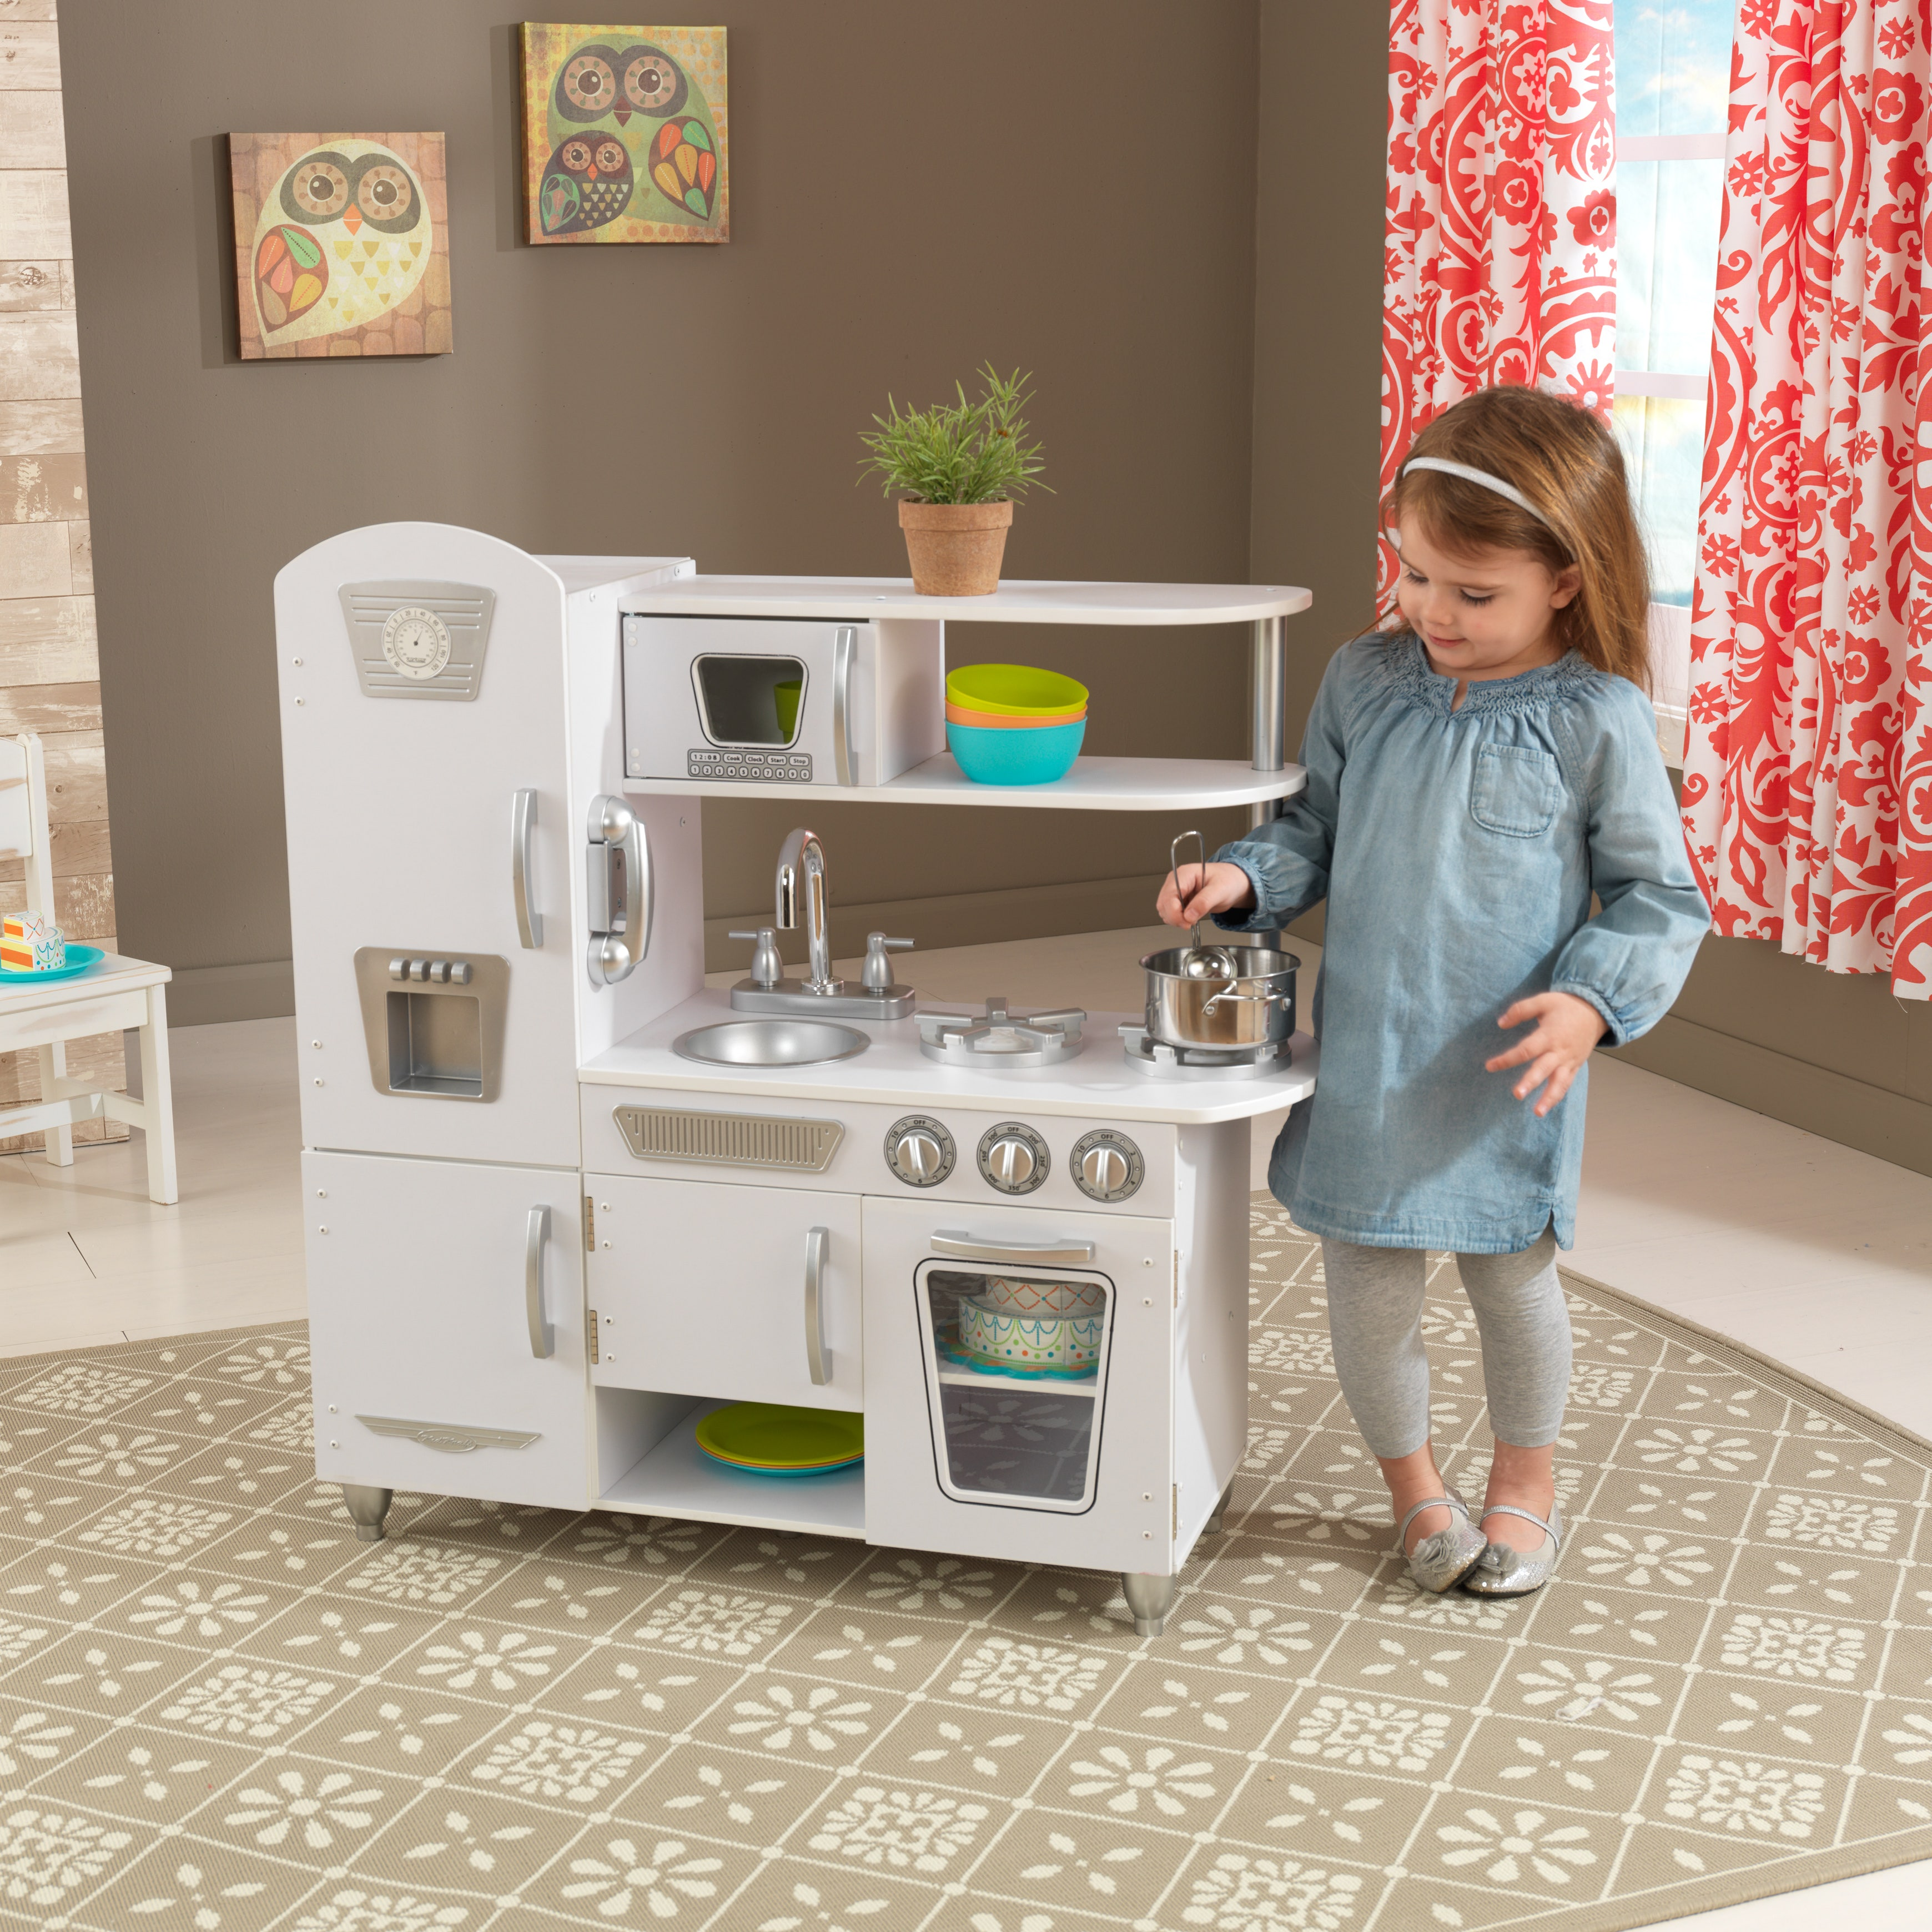 Toys and Play Sets